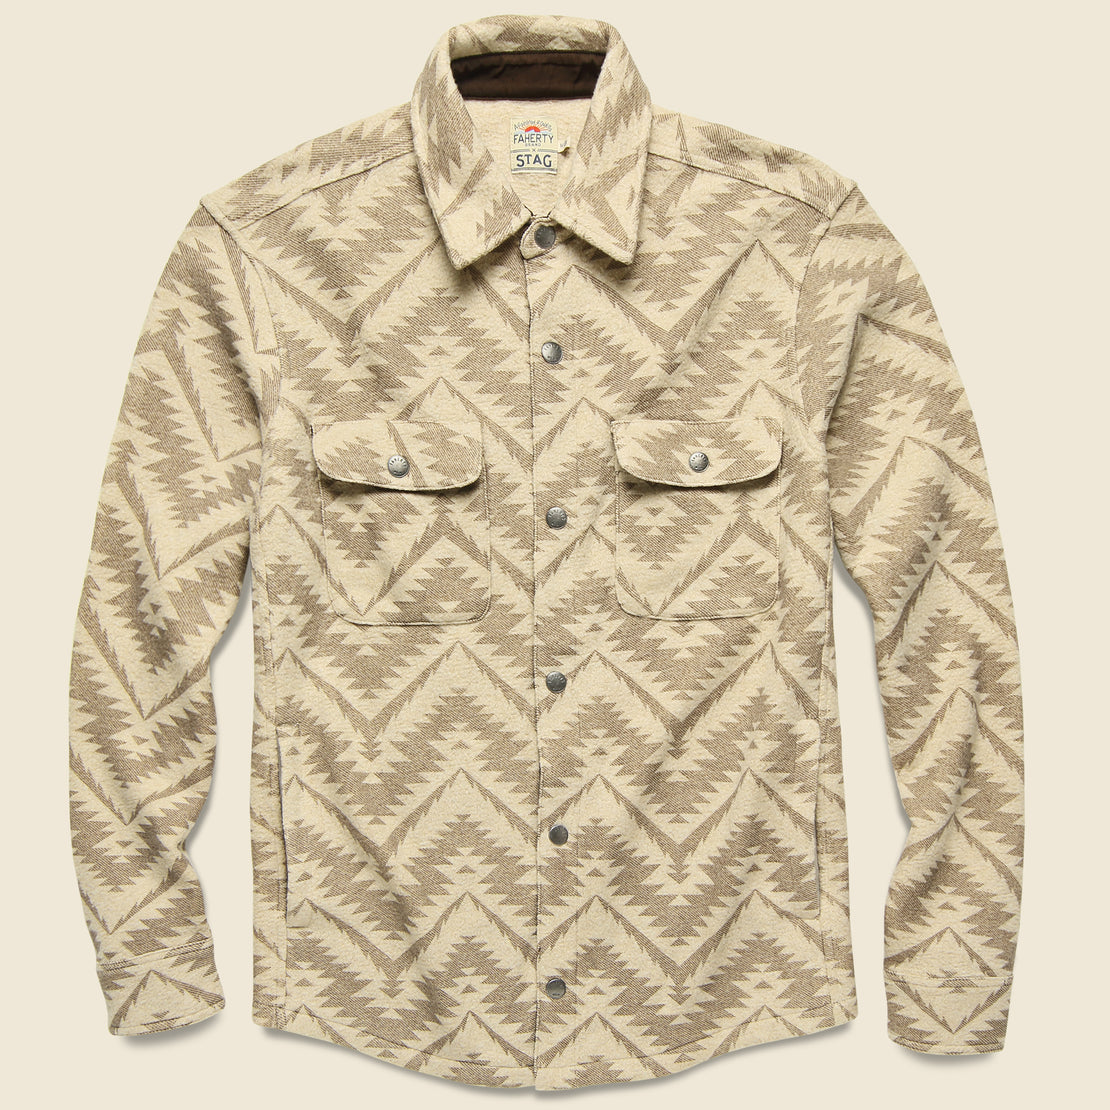 Faherty Monument Valley CPO Jacket - Sandstone